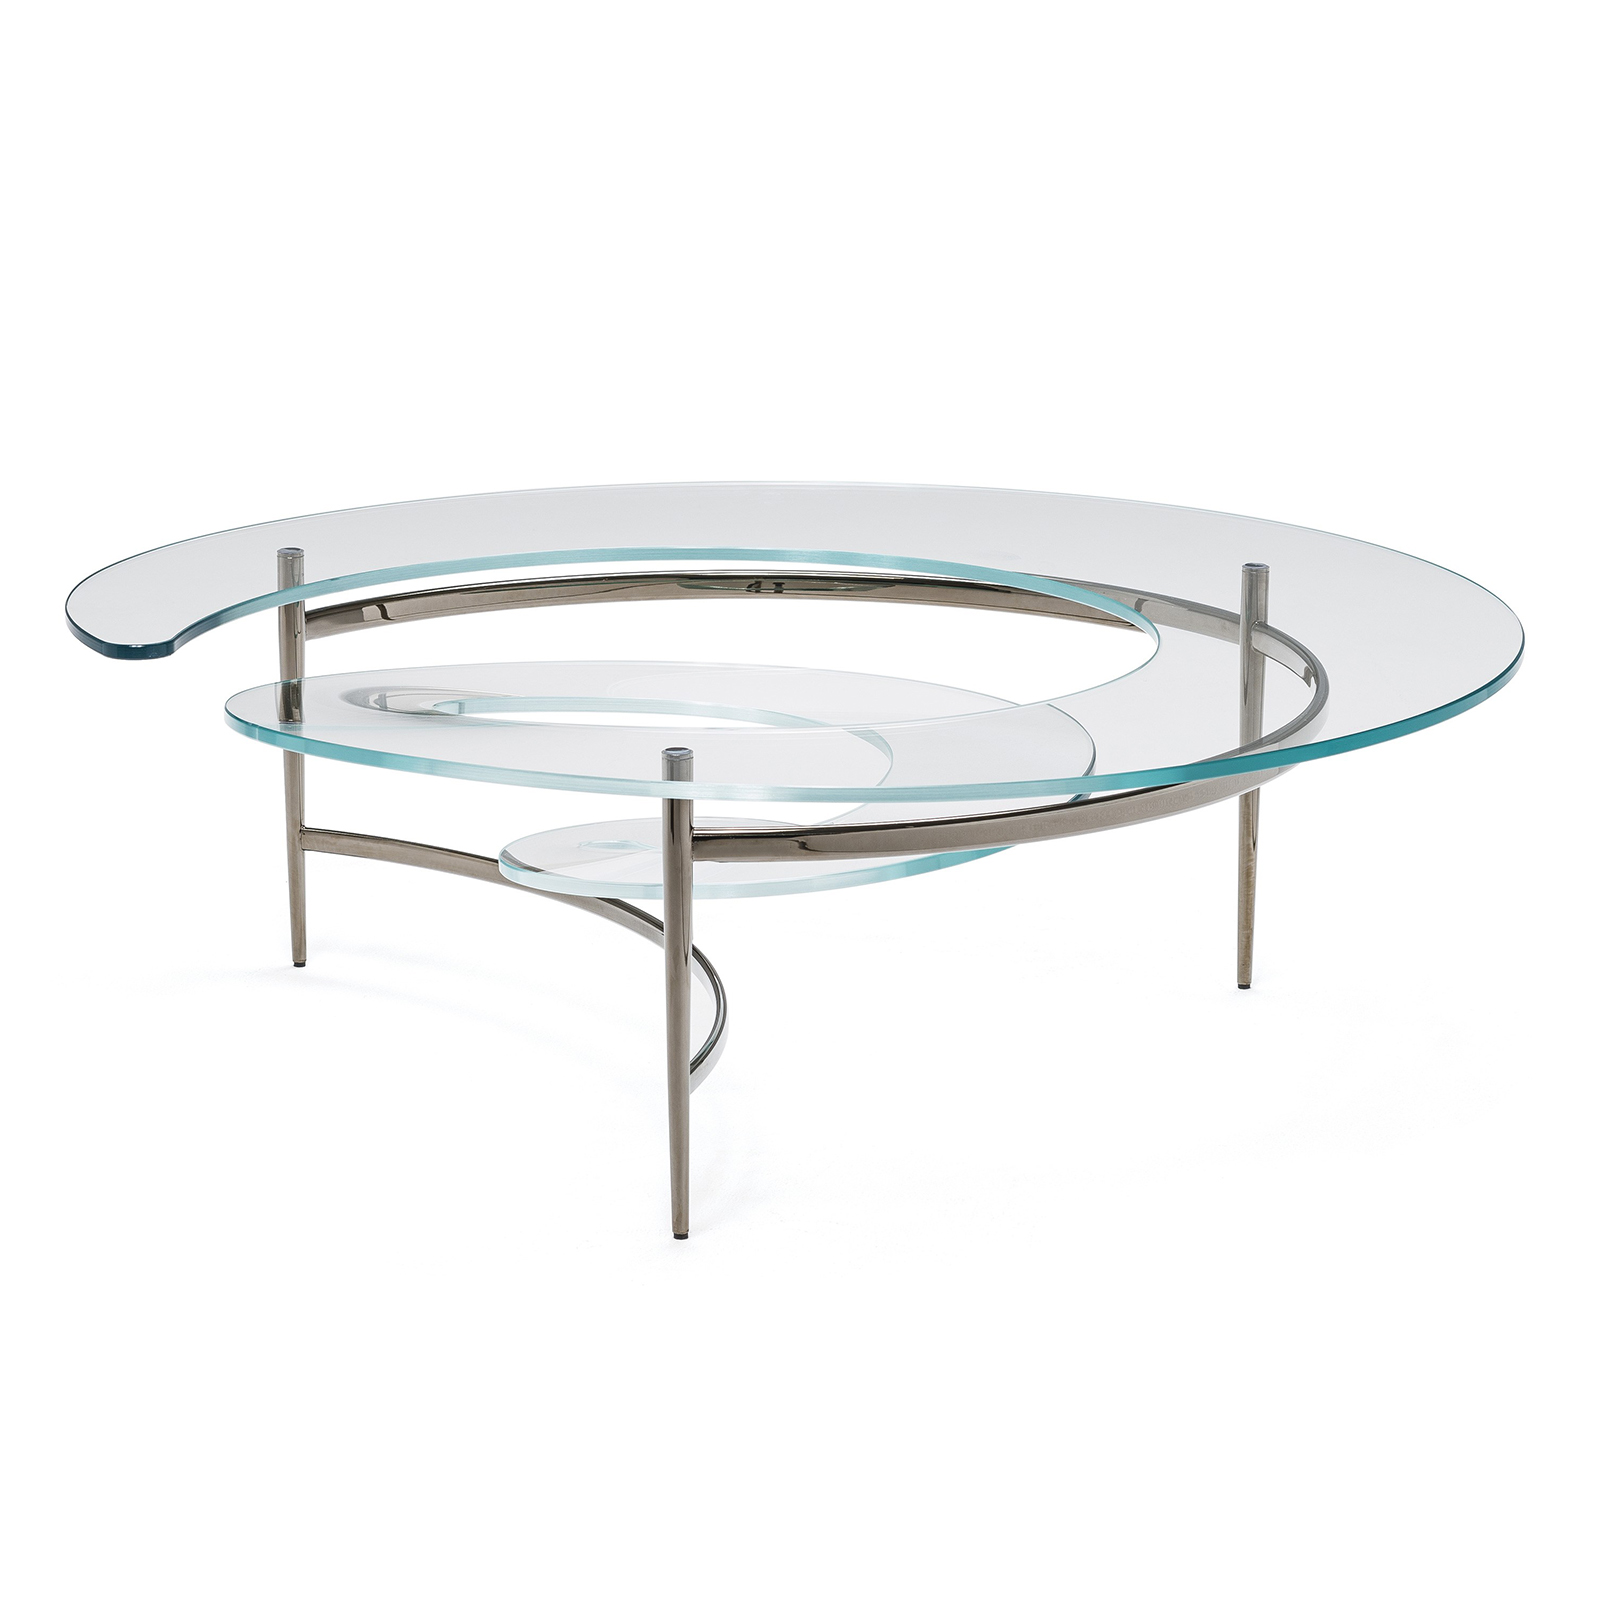 Table basse design en verre spirale mobilier de luxe idkrea collection Table en verre design